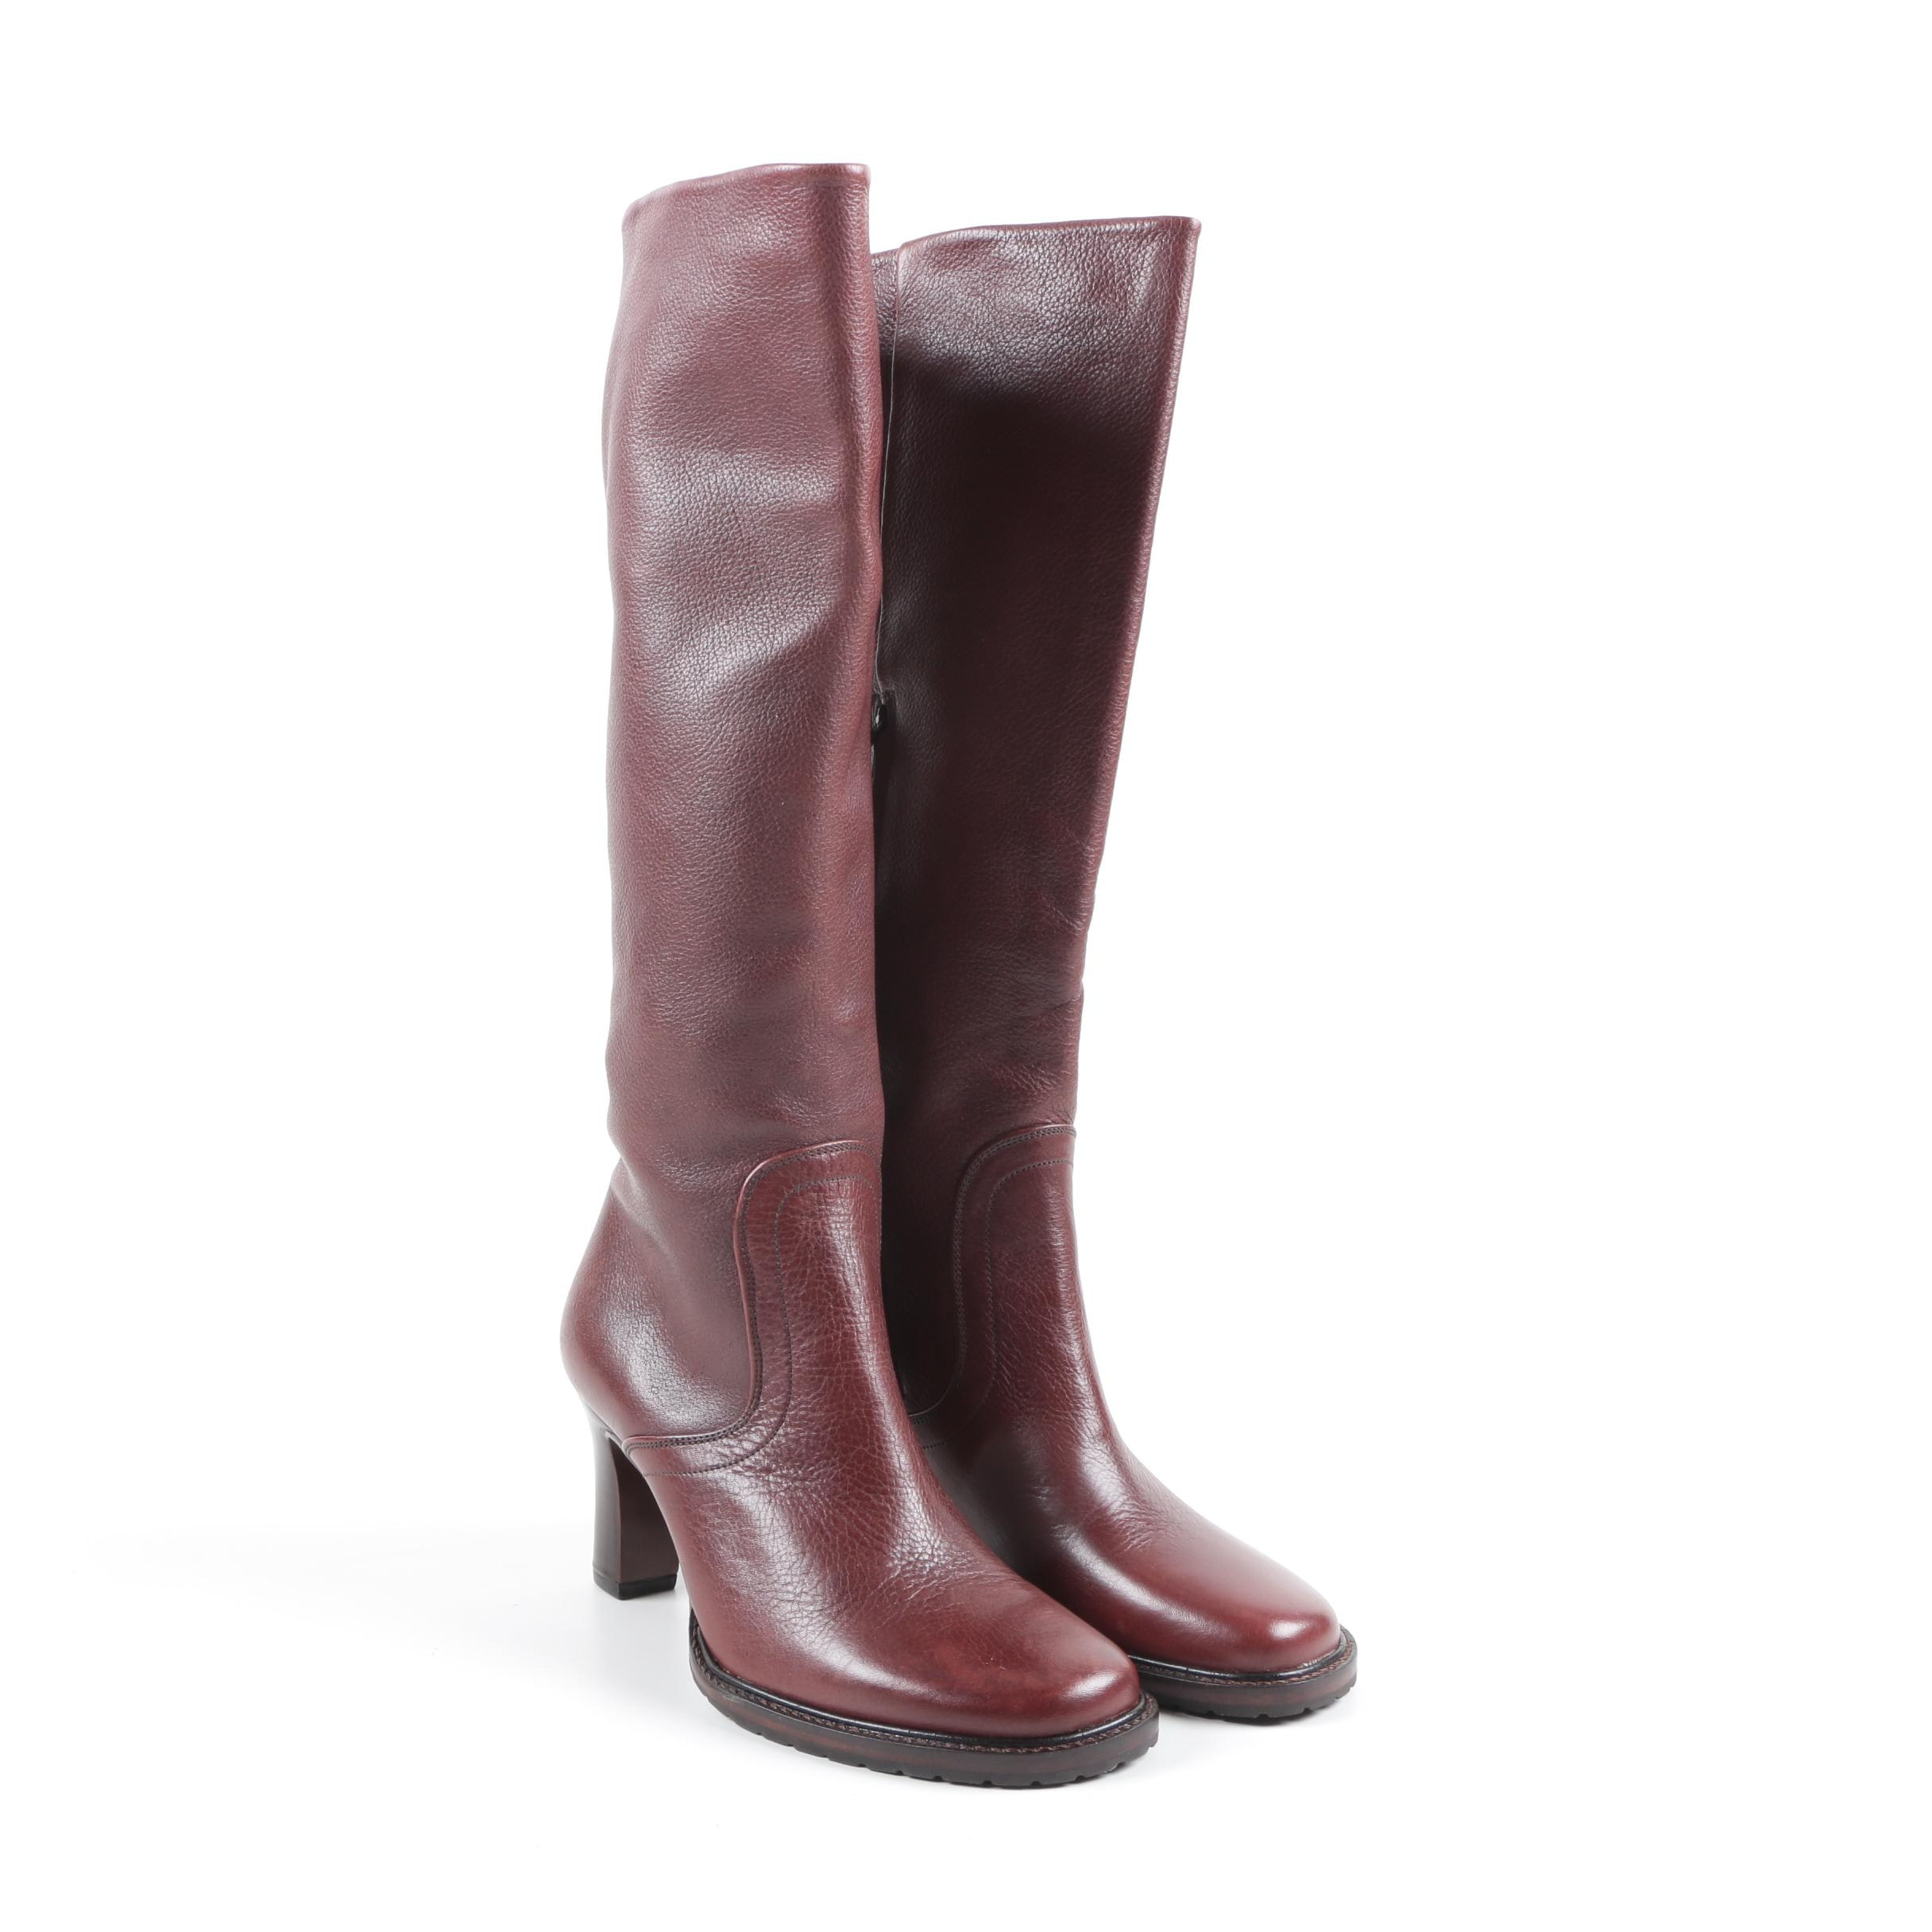 Women's Red Leather High Heeled Boots